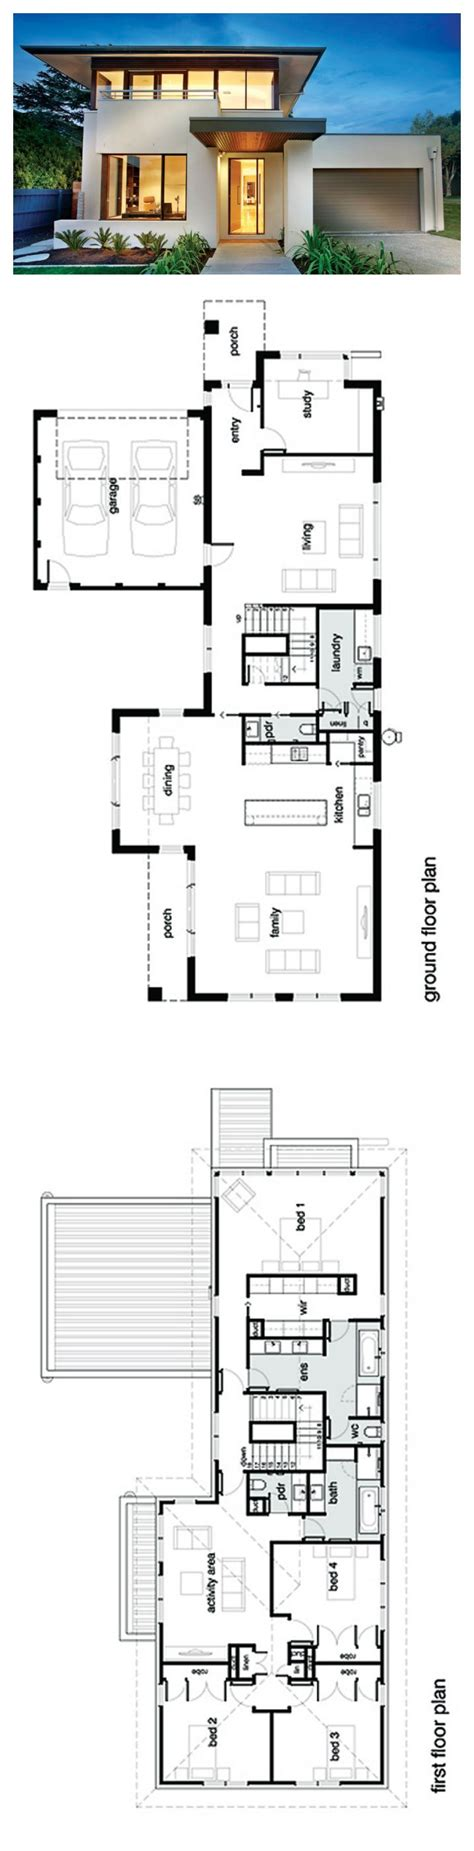 modern house design plans the 25 best ideas about modern house plans on modern house floor plans modern